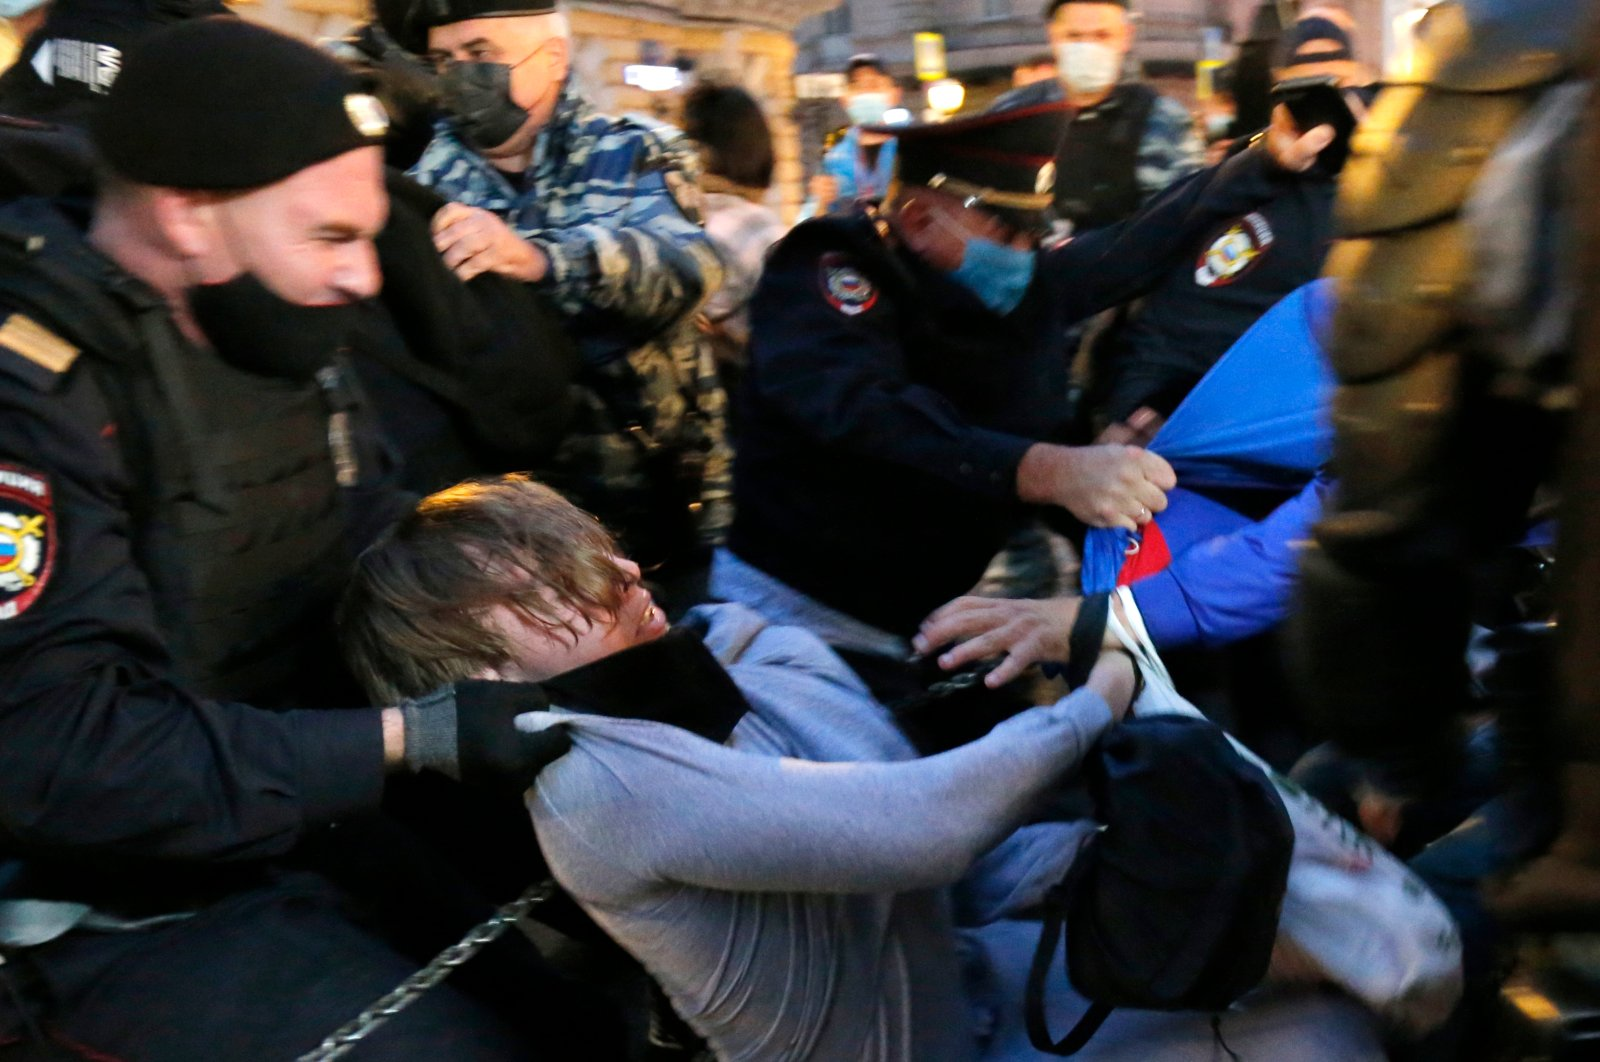 Police officers detain a protester during a rally to cancel the results of voting on amendments to the Constitution in Pushkin Square in Moscow, Russia, July 15, 2020. (AP Photo)